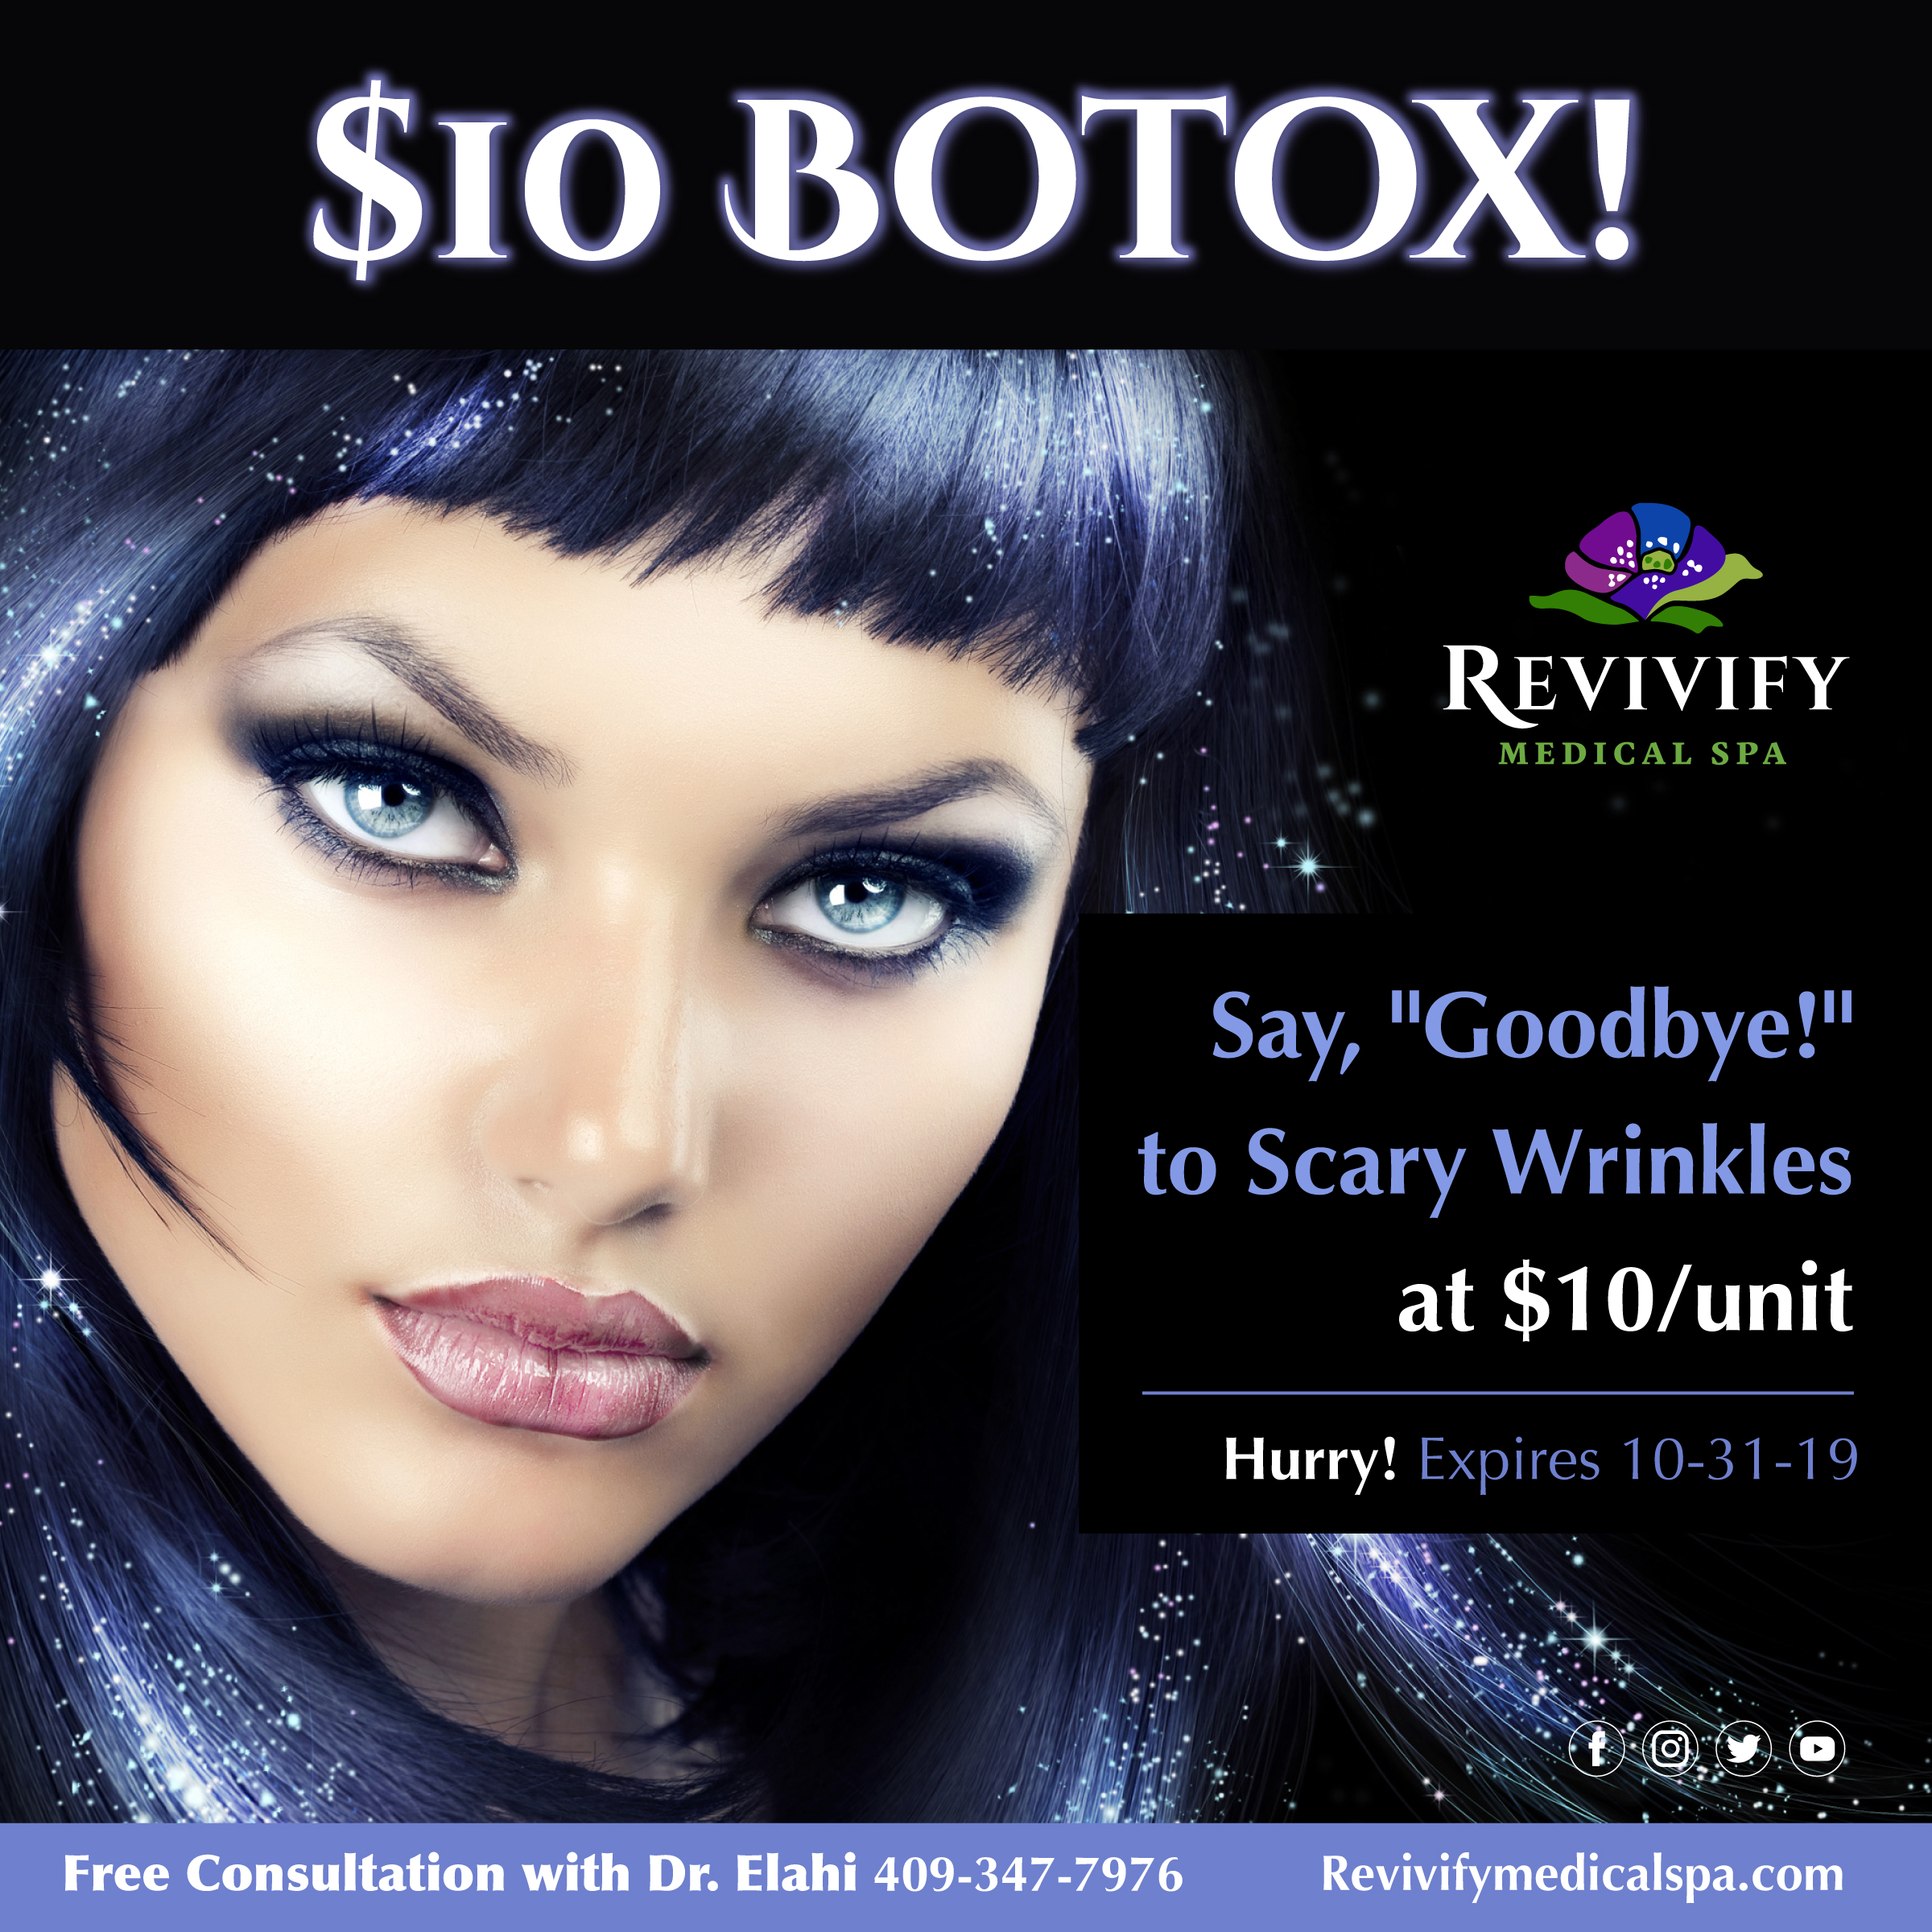 goodbye scary wrinkles $10 unit botox & filler $50 a syringe